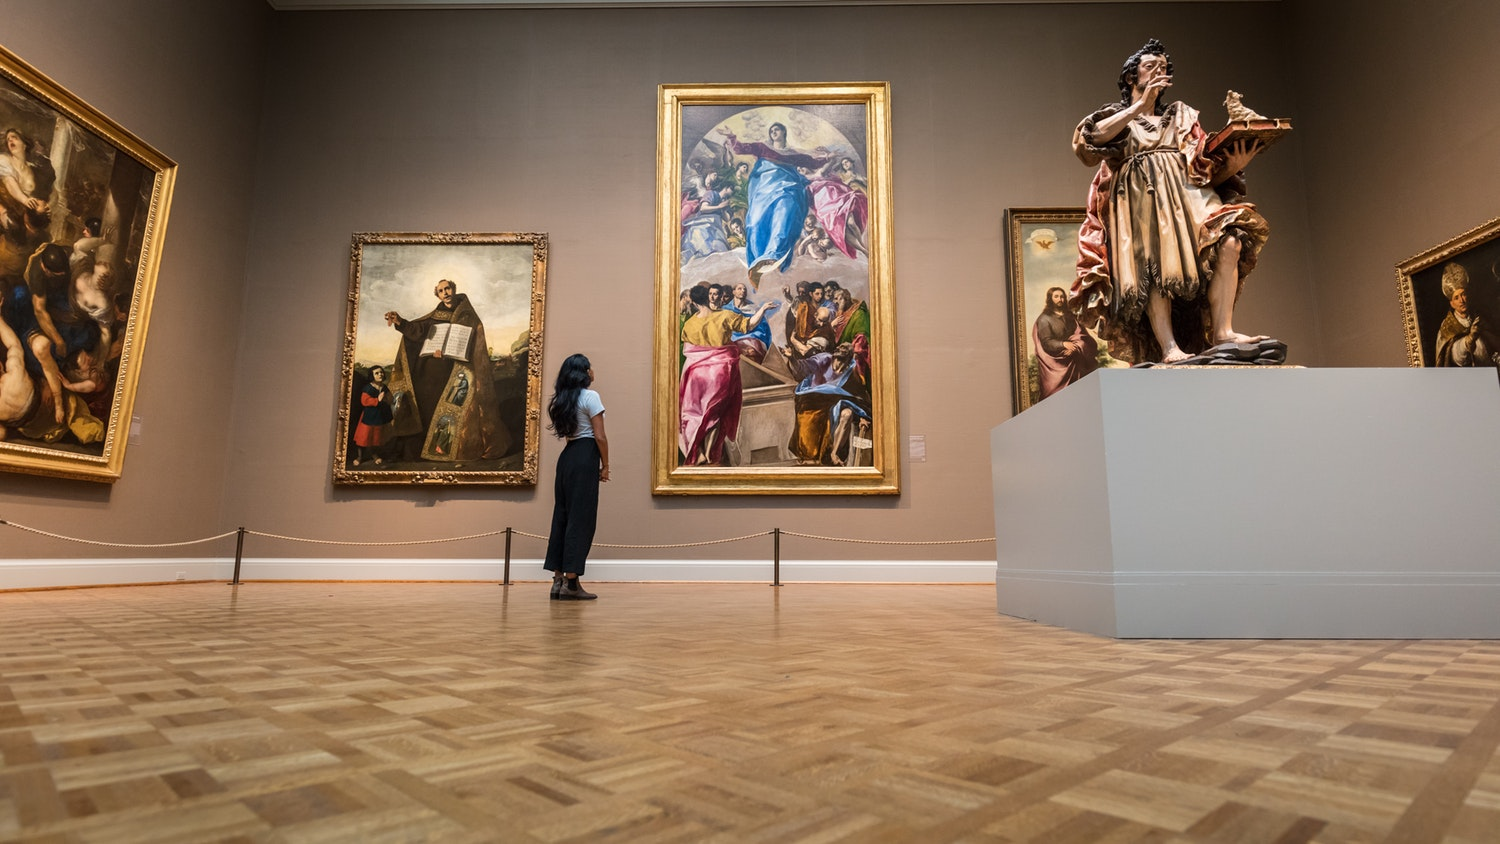 What's Next for Museums?